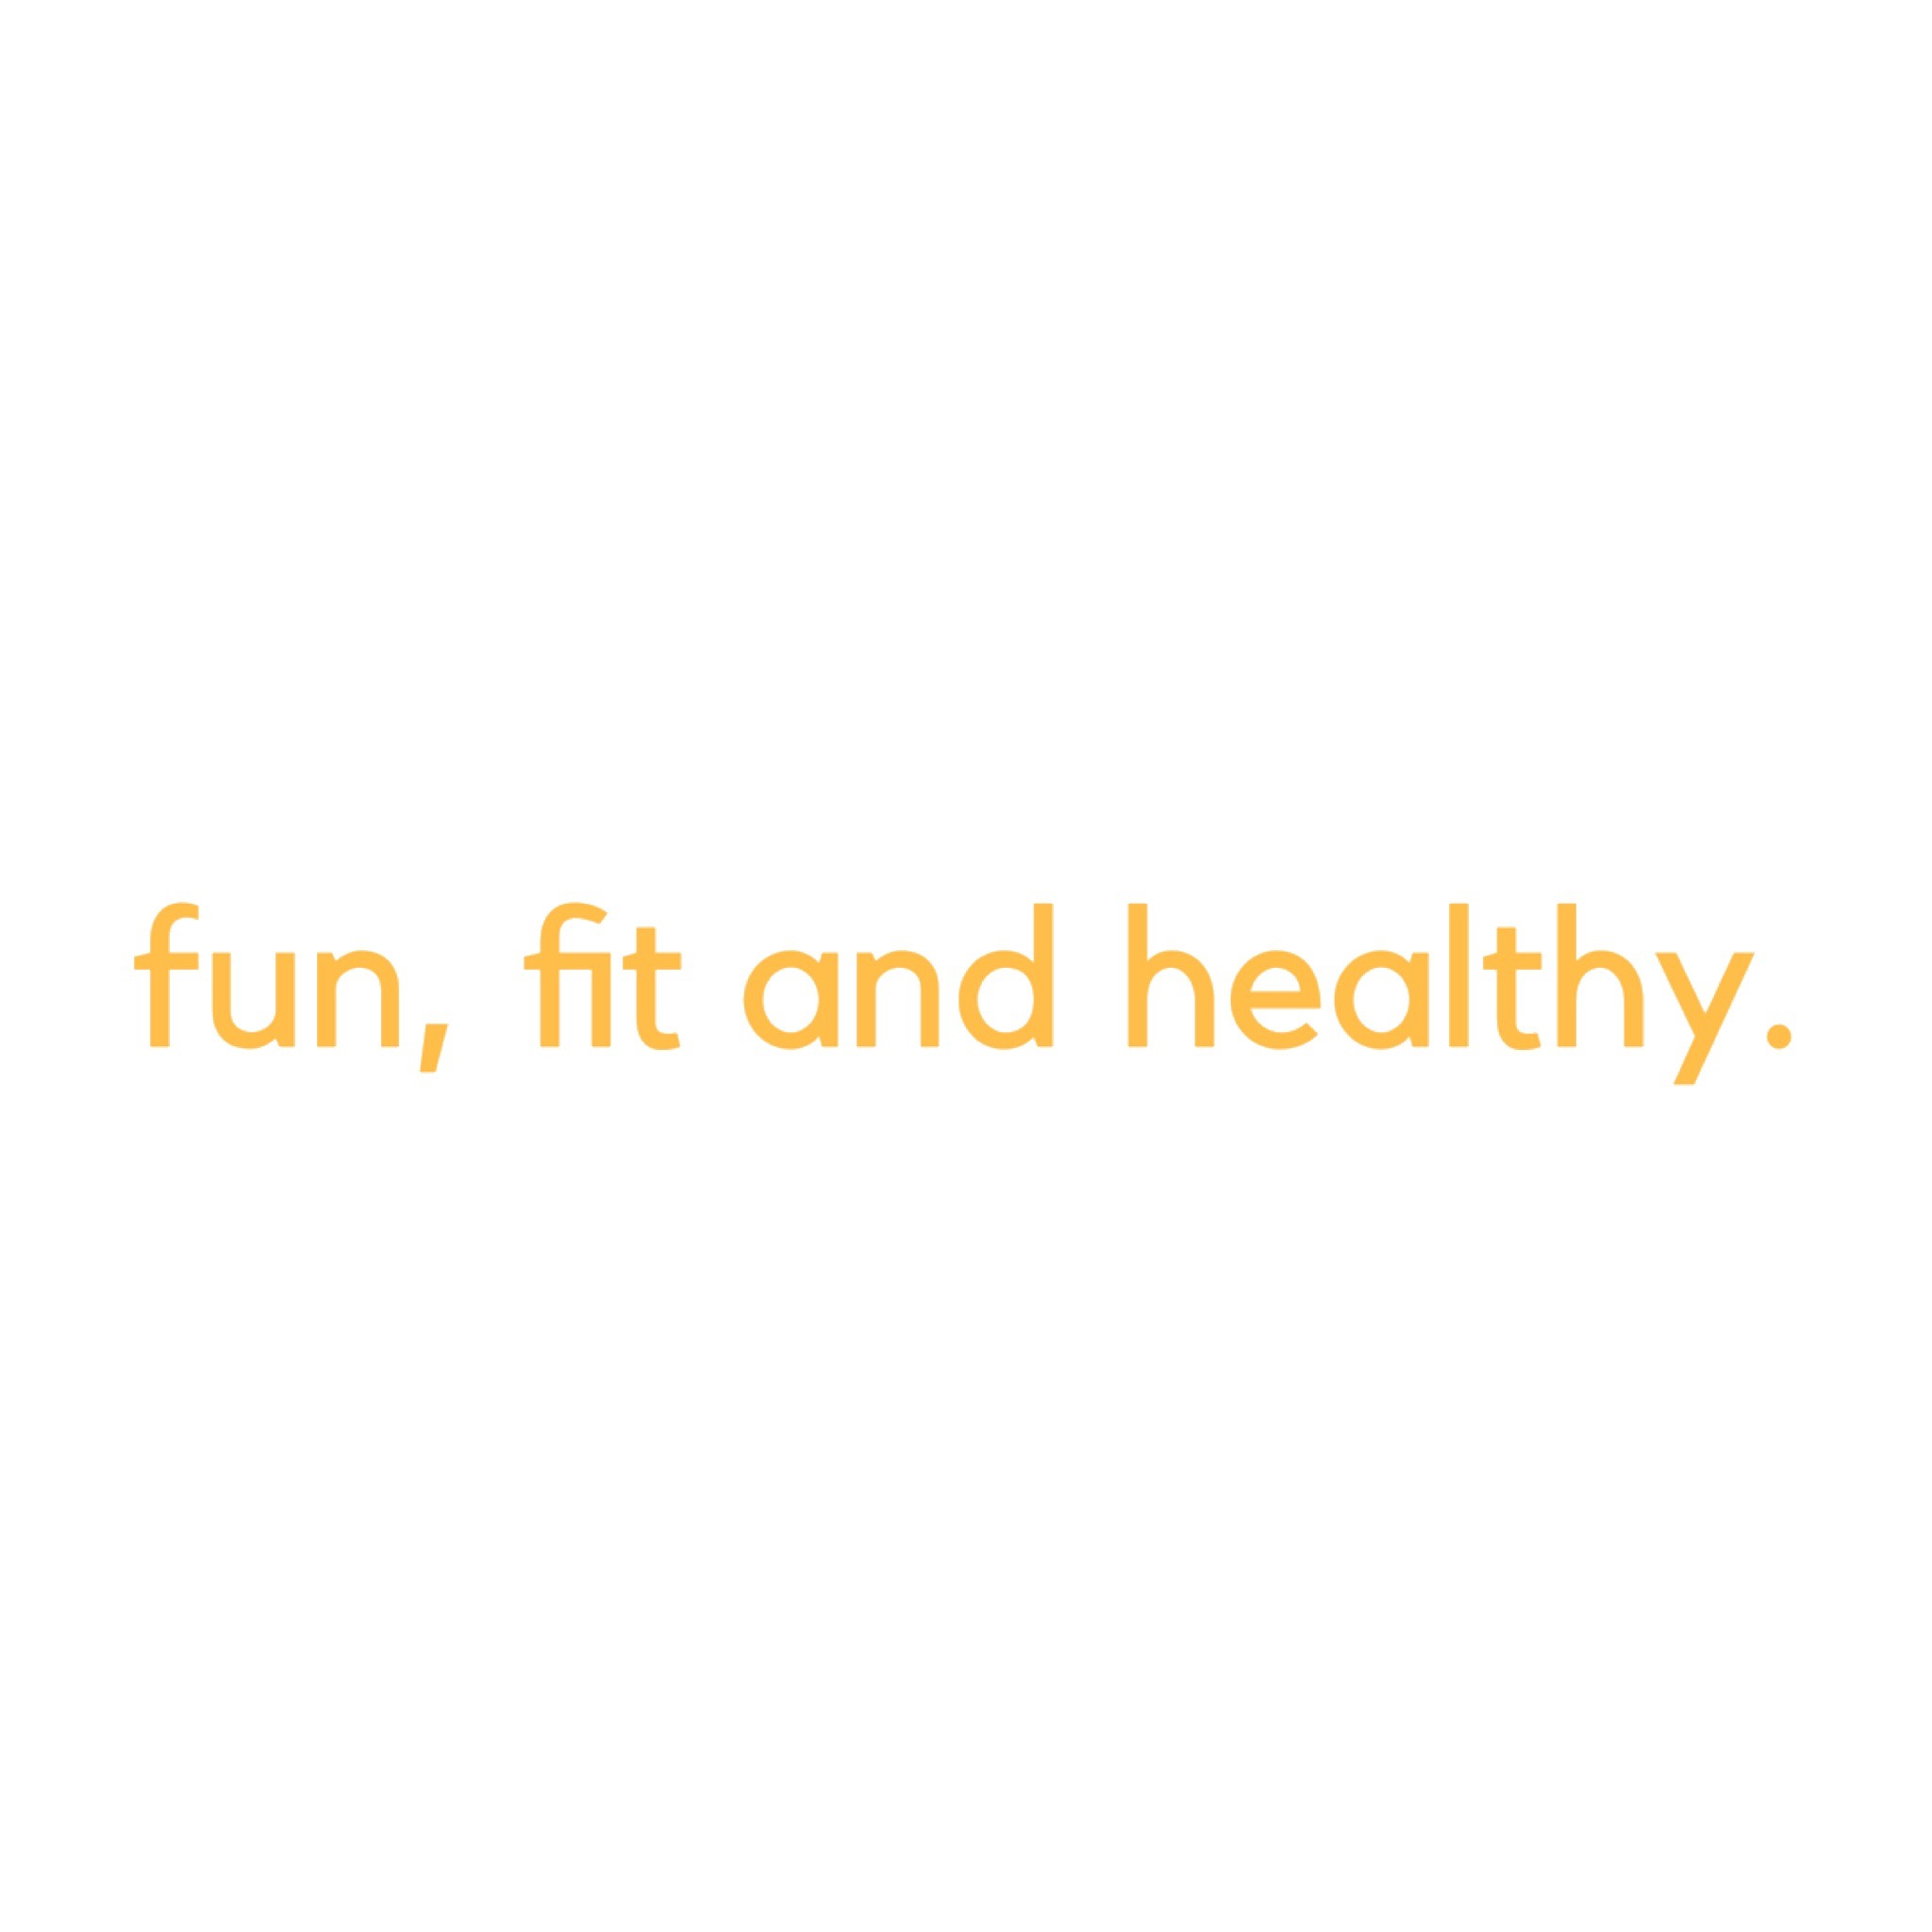 Fun, Fit and Healthy Stickers messages sticker-11